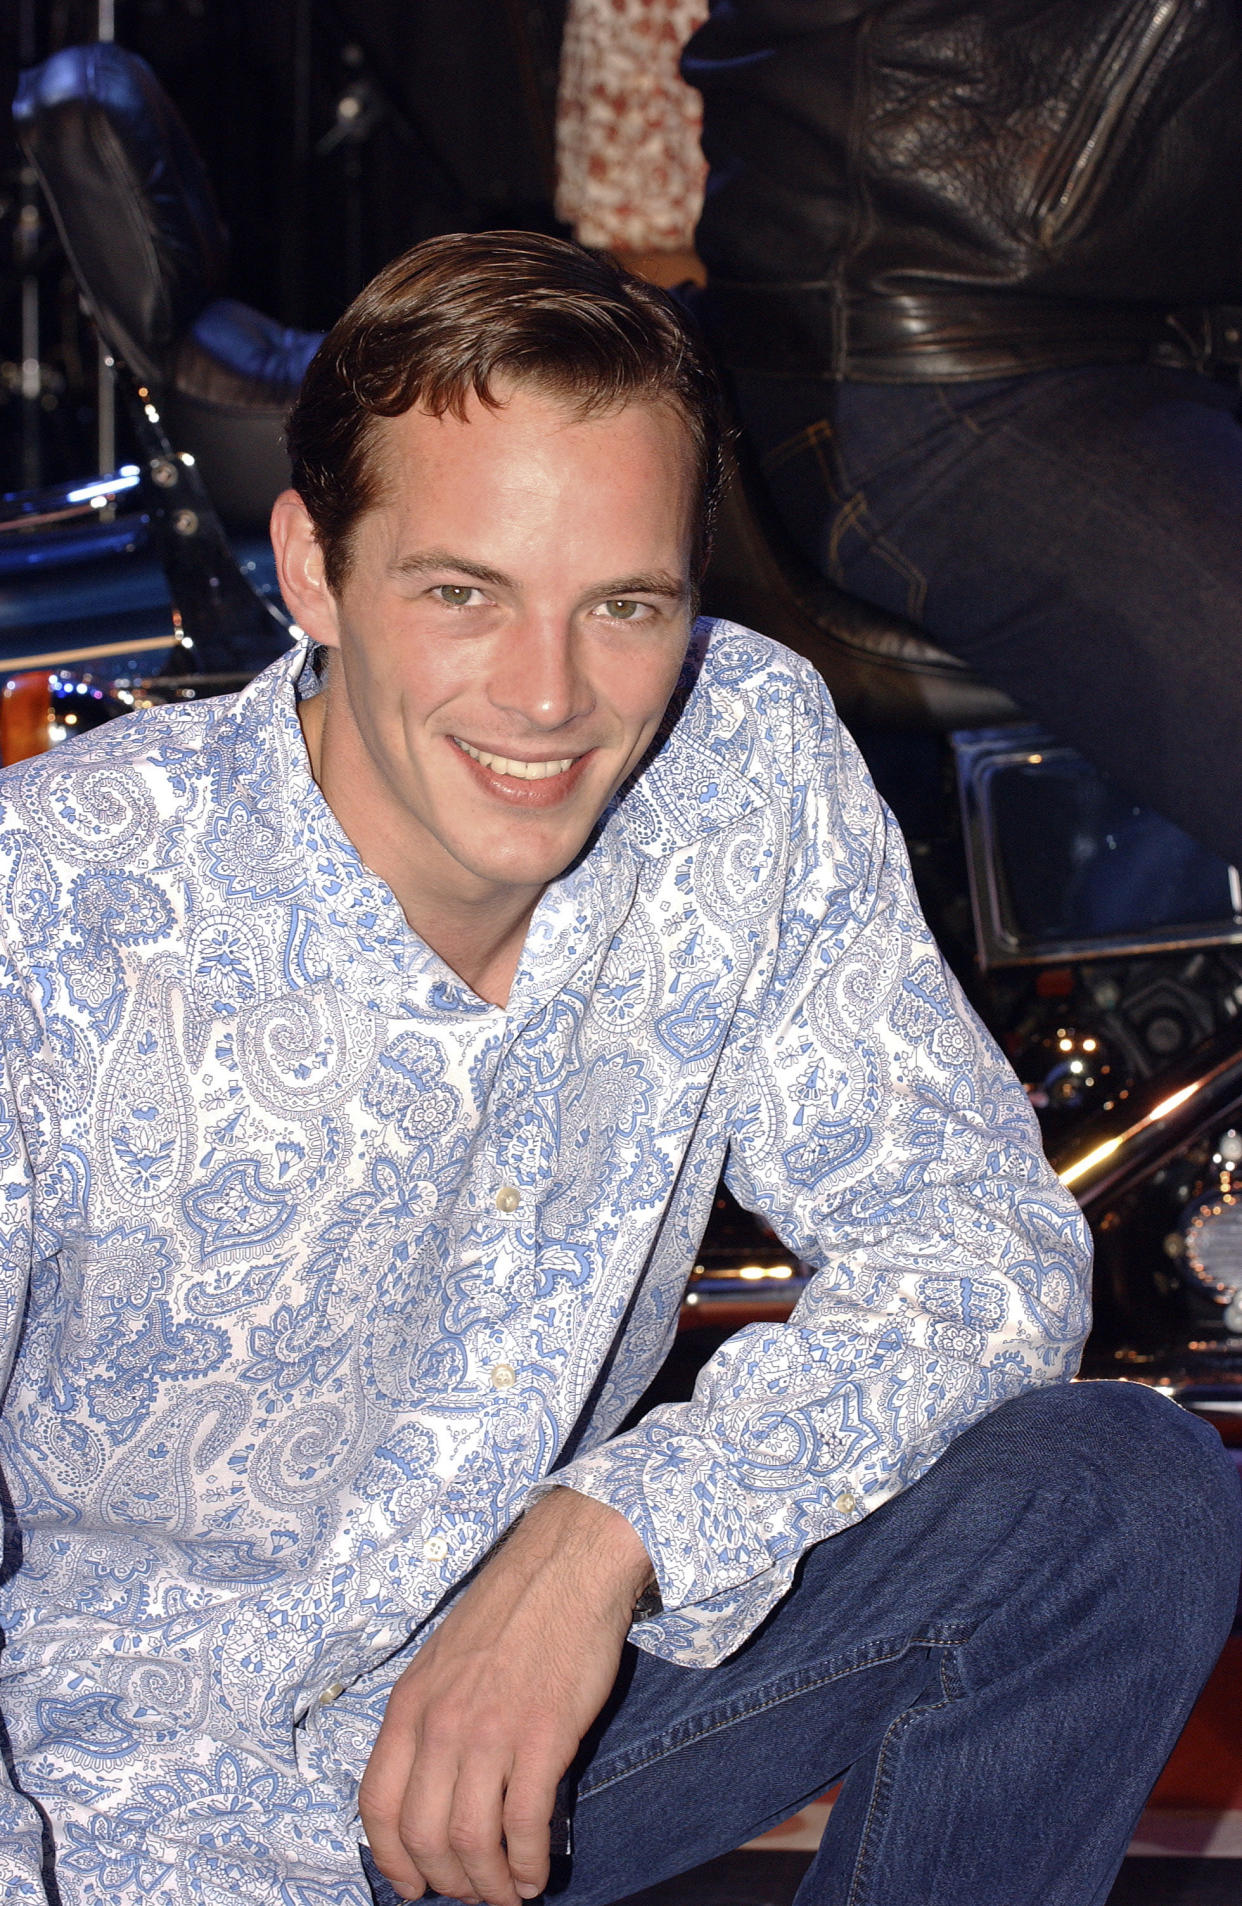 Dieter Brummer during a media preview of the stage production of 'Leader of the Pack' at the Star City Showroom on June 25, 2003